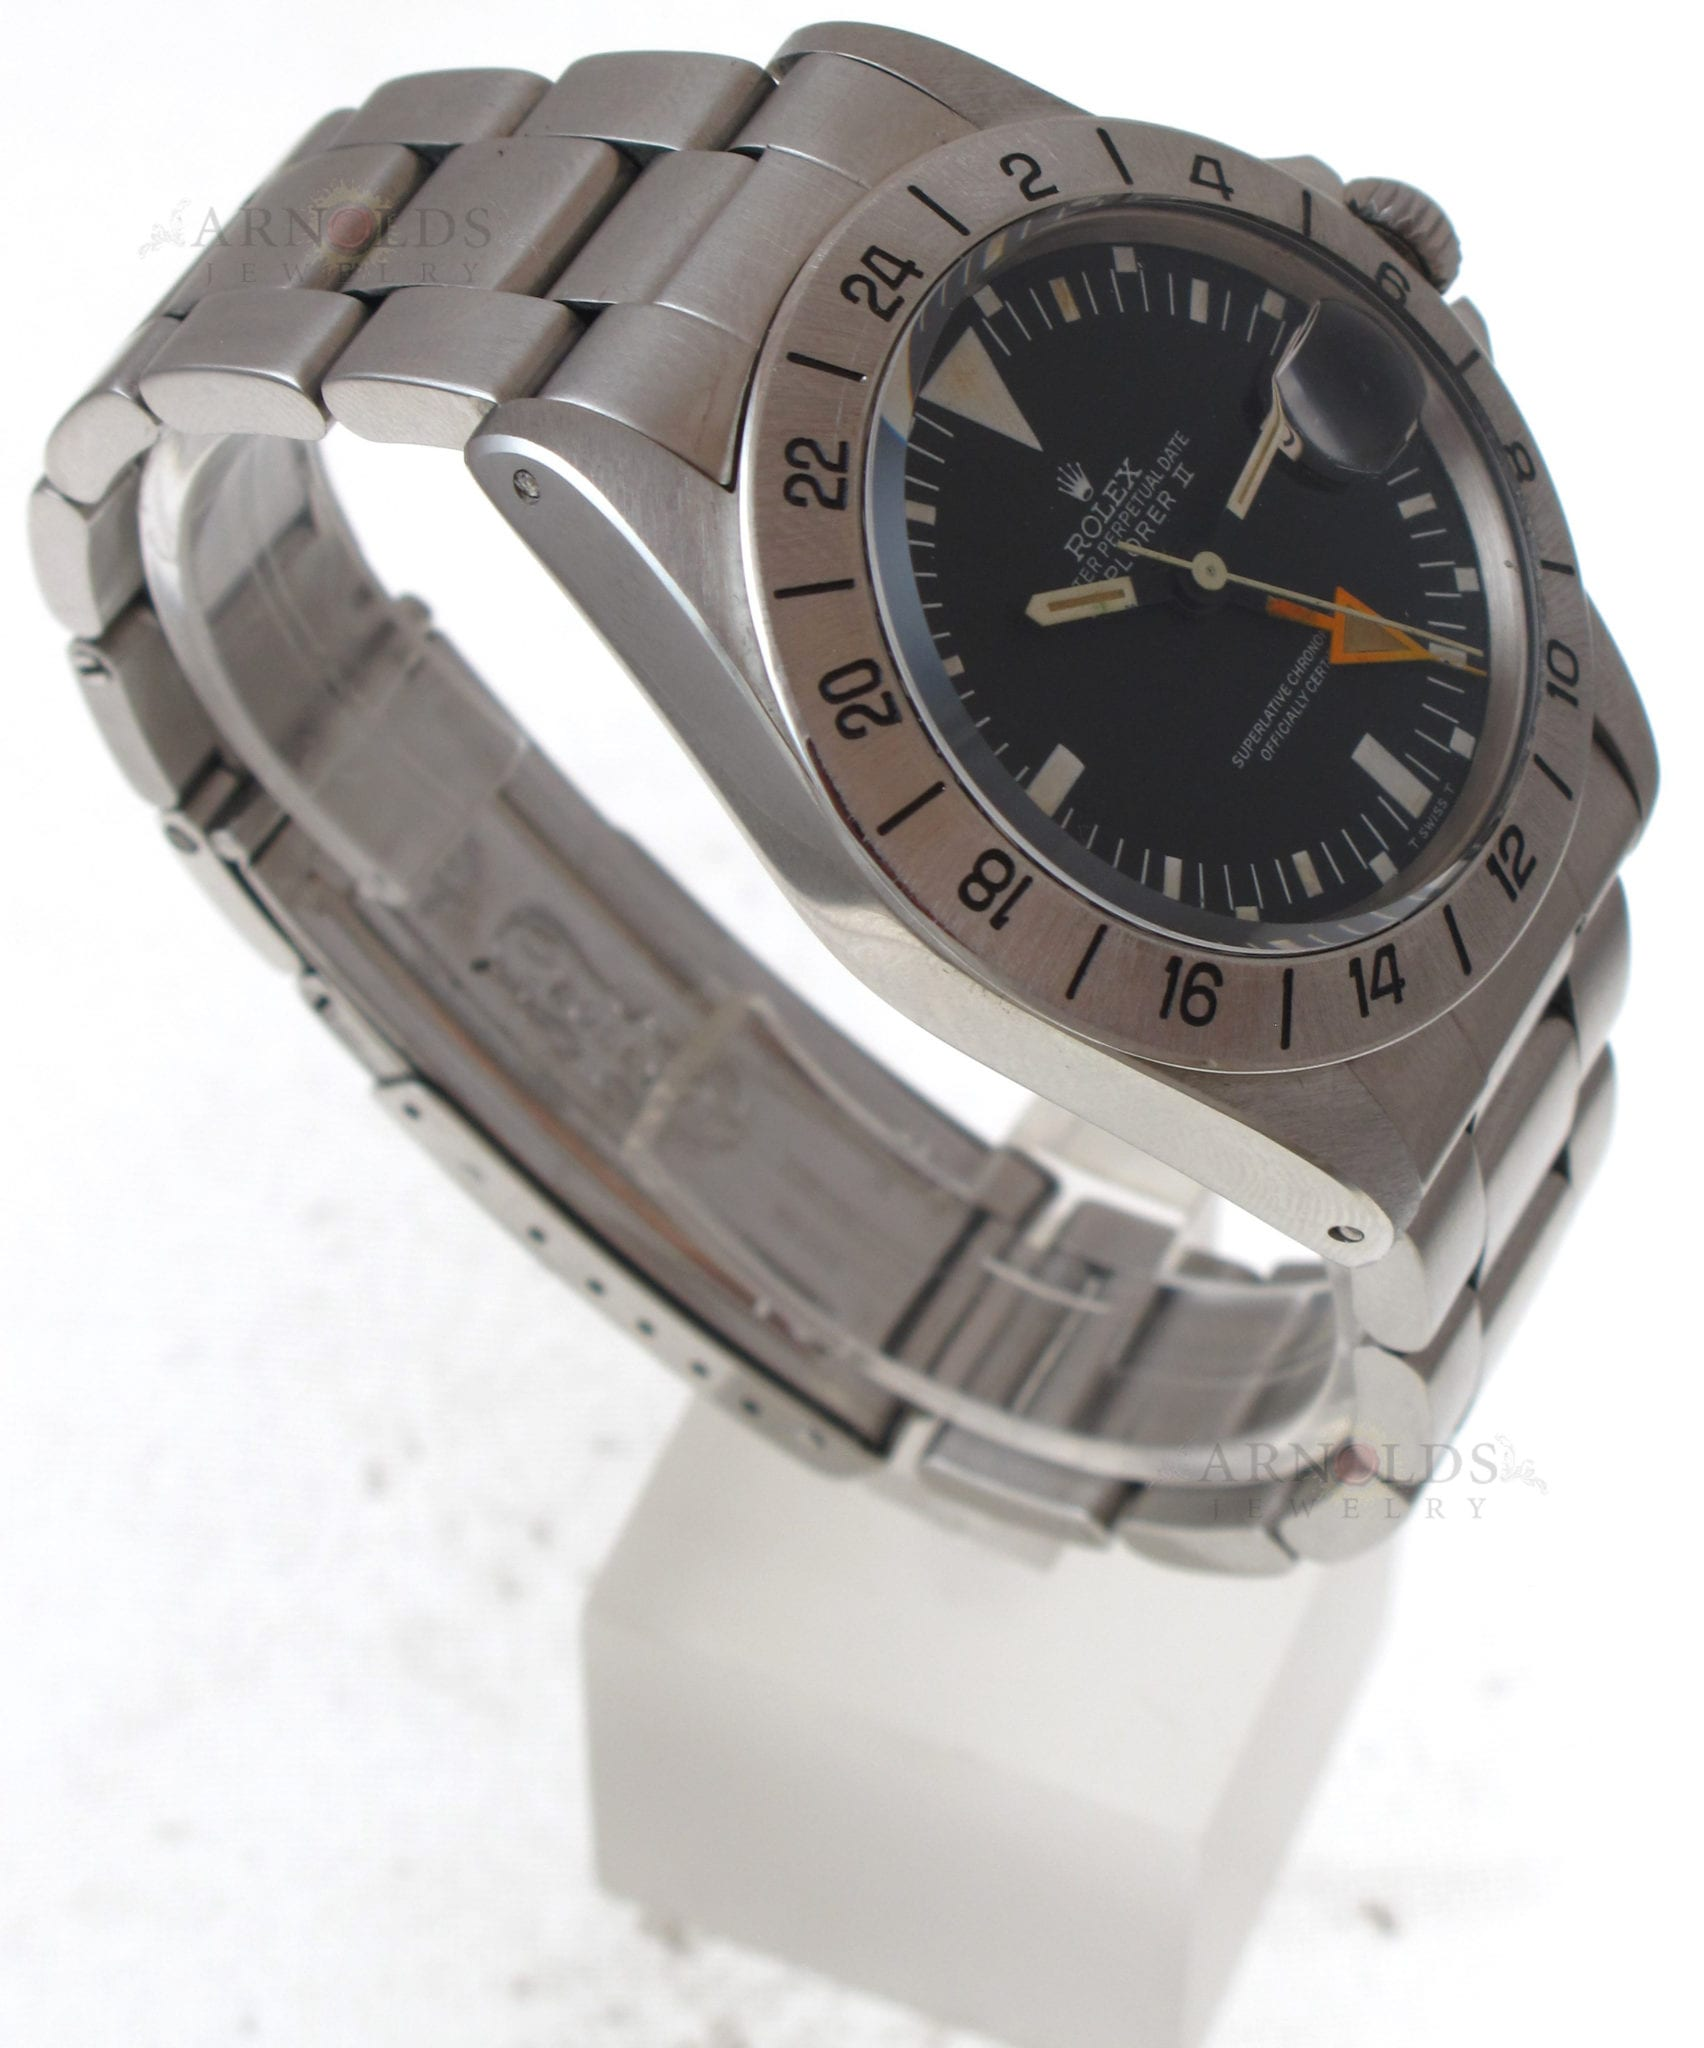 Pre owned 1971 vintage rolex explorer ii steve mcqueen watch stainless steel black mk1 dial for Mcqueen watches